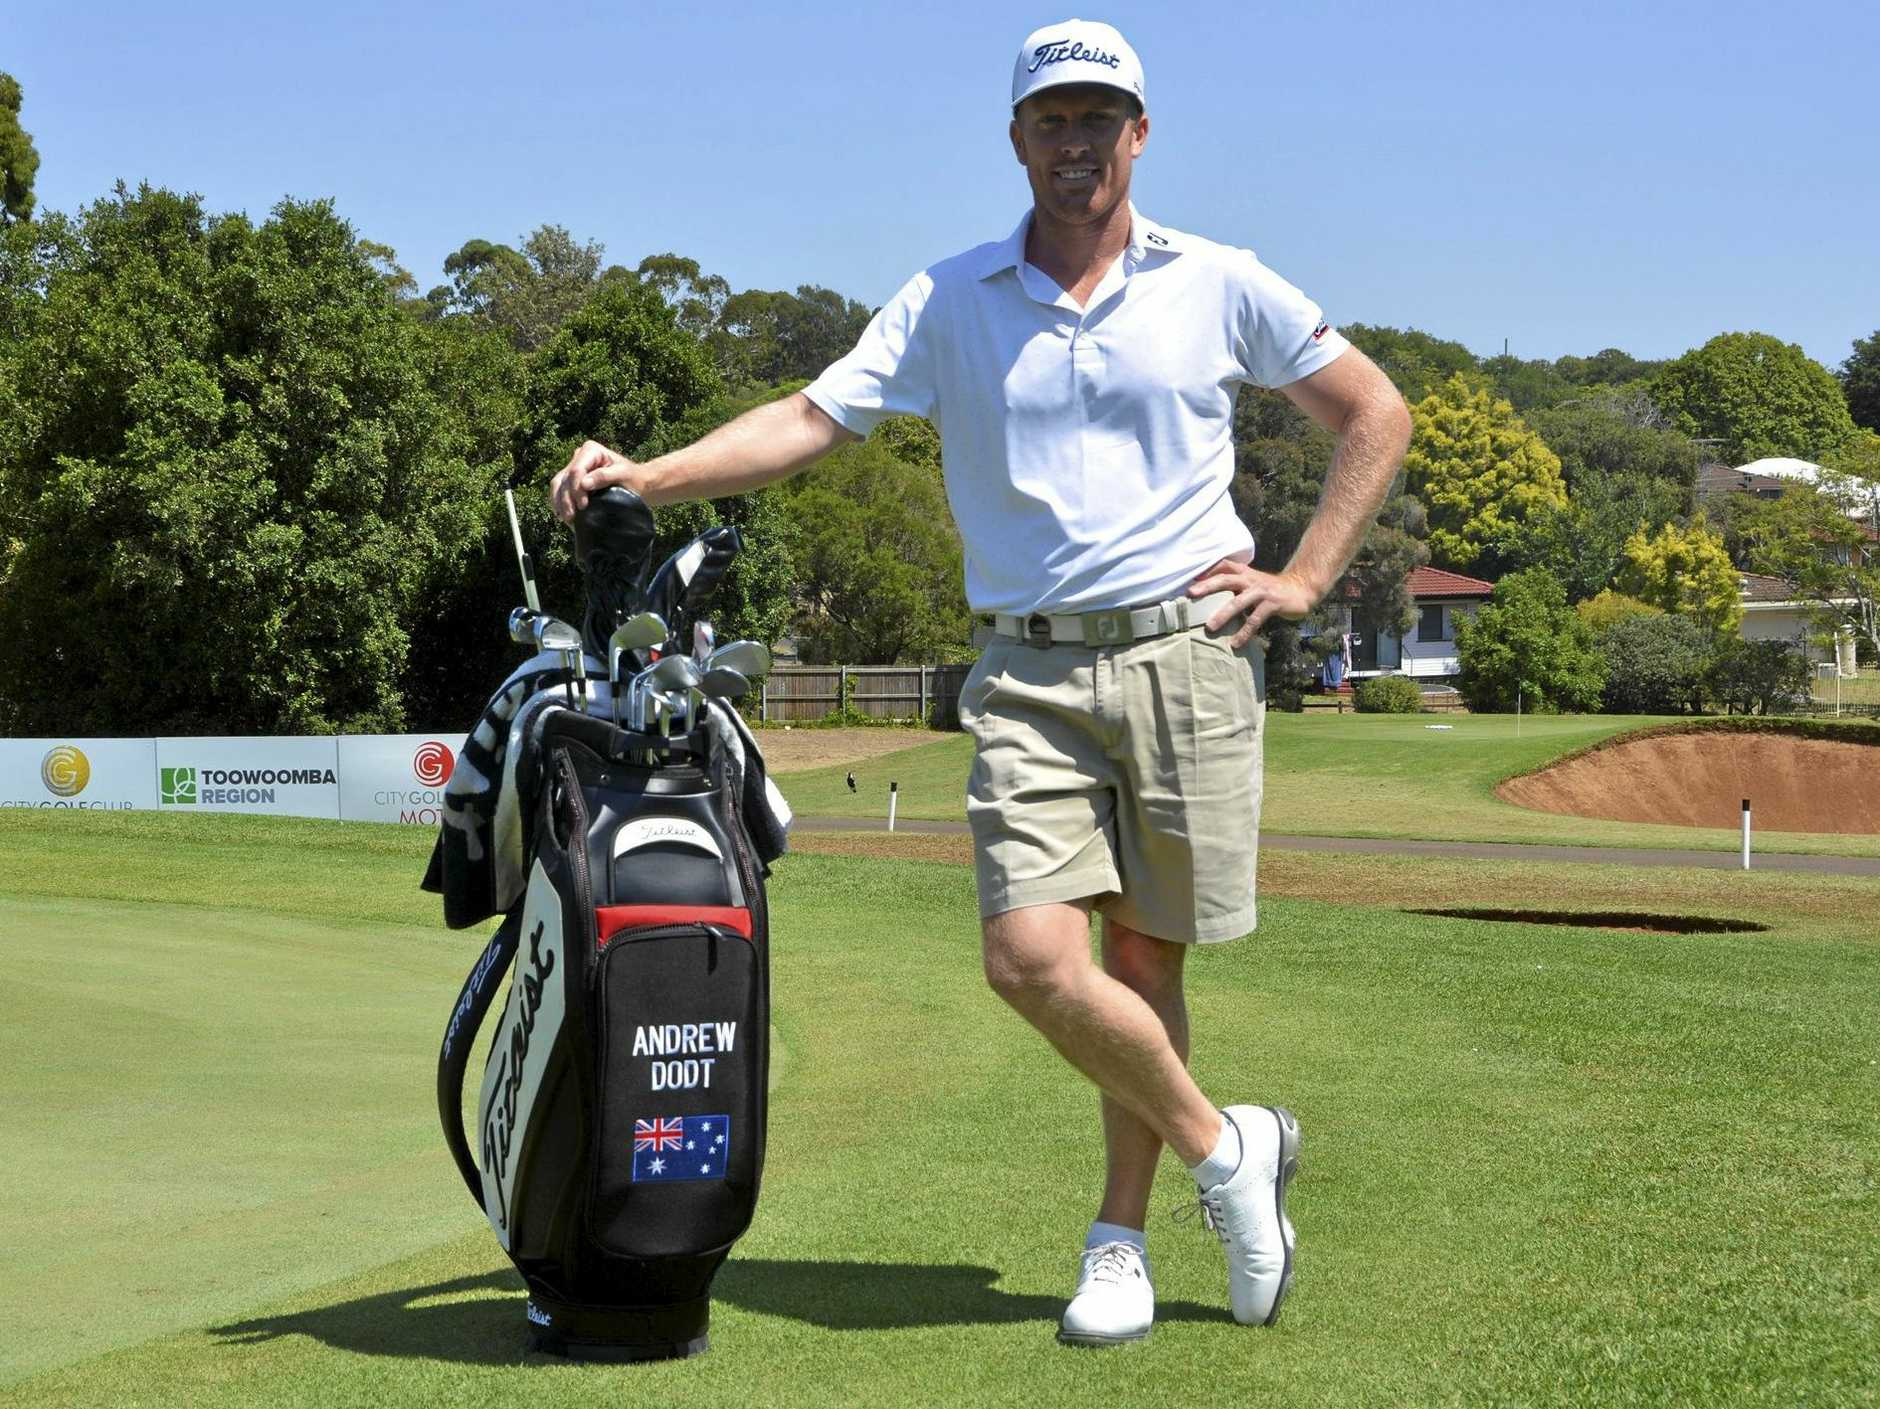 Gatton's Andrew Dodt begins his quest at City Golf Club today for the 2019 Coca-Cola Queensland PGA Championship.